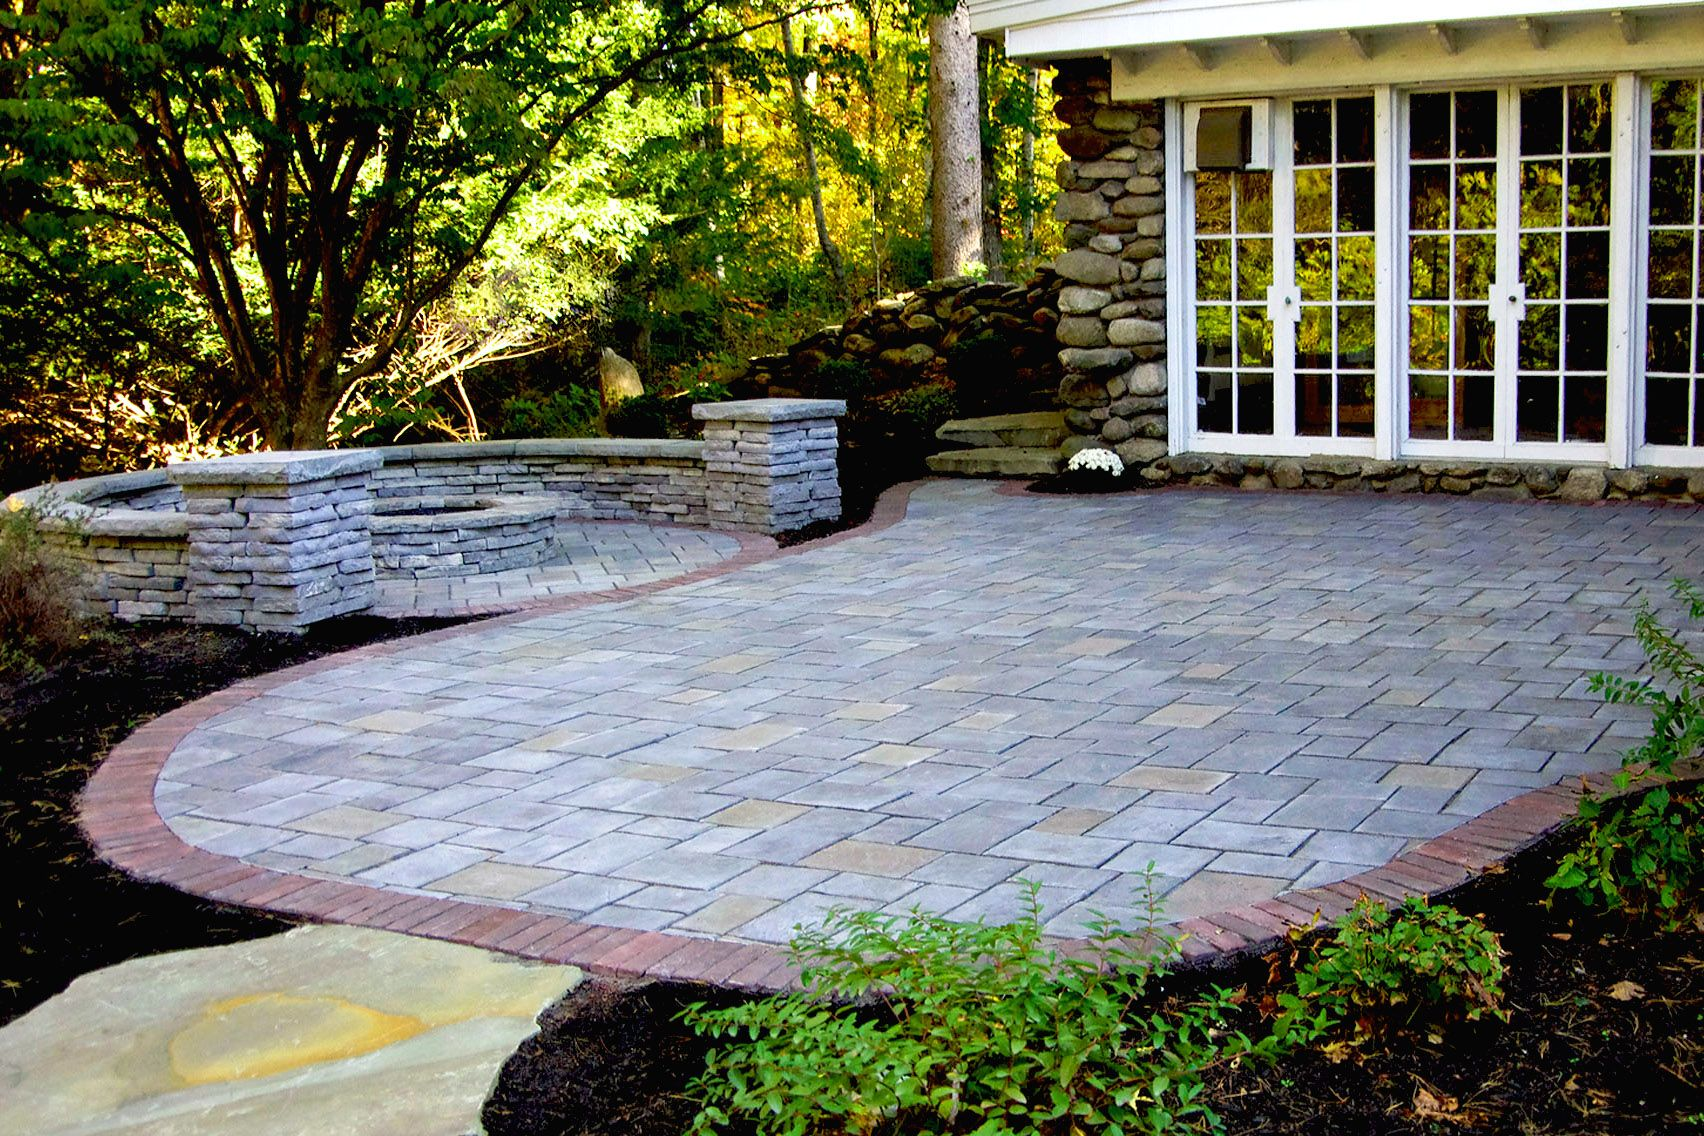 Unilock Richcliff Paver Patio With Fire Pit And Rivercrest. Affordable Patio Furniture Covers. Plastic Outdoor Furniture Looks Like Wood. Easy Living Patio Furniture. Affordable Outdoor Furniture Toronto. Patio Door Decorating Ideas. Kitchen Design Patio Doors. Patio Furniture Glass Table Top Replacement. Outdoor Deck And Patio Designs